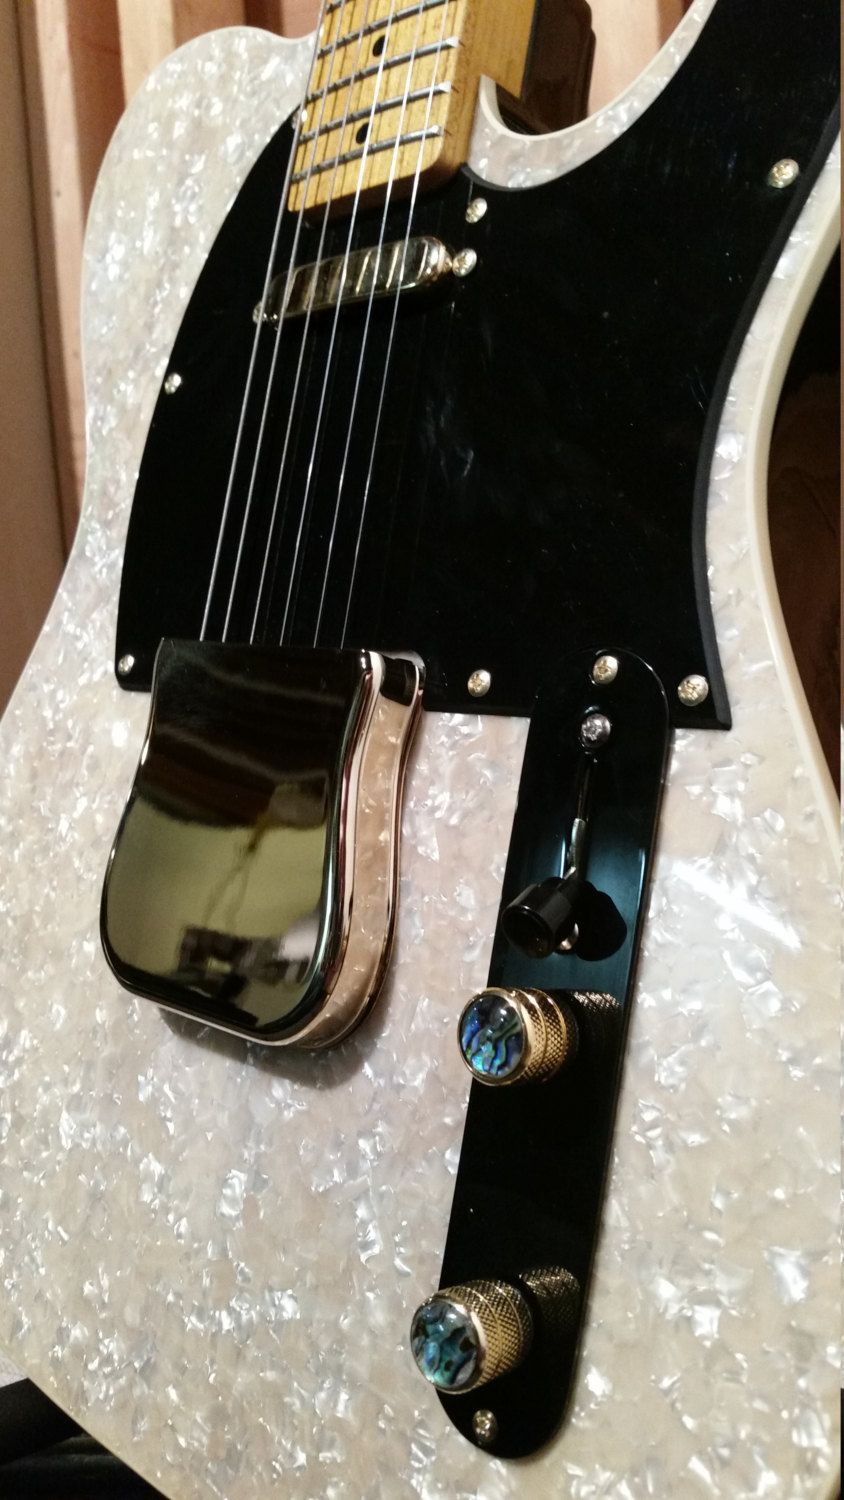 KJug Original TC (tele style 6 string right handed solid body electric guitar) with Fender ABS HSC Case!